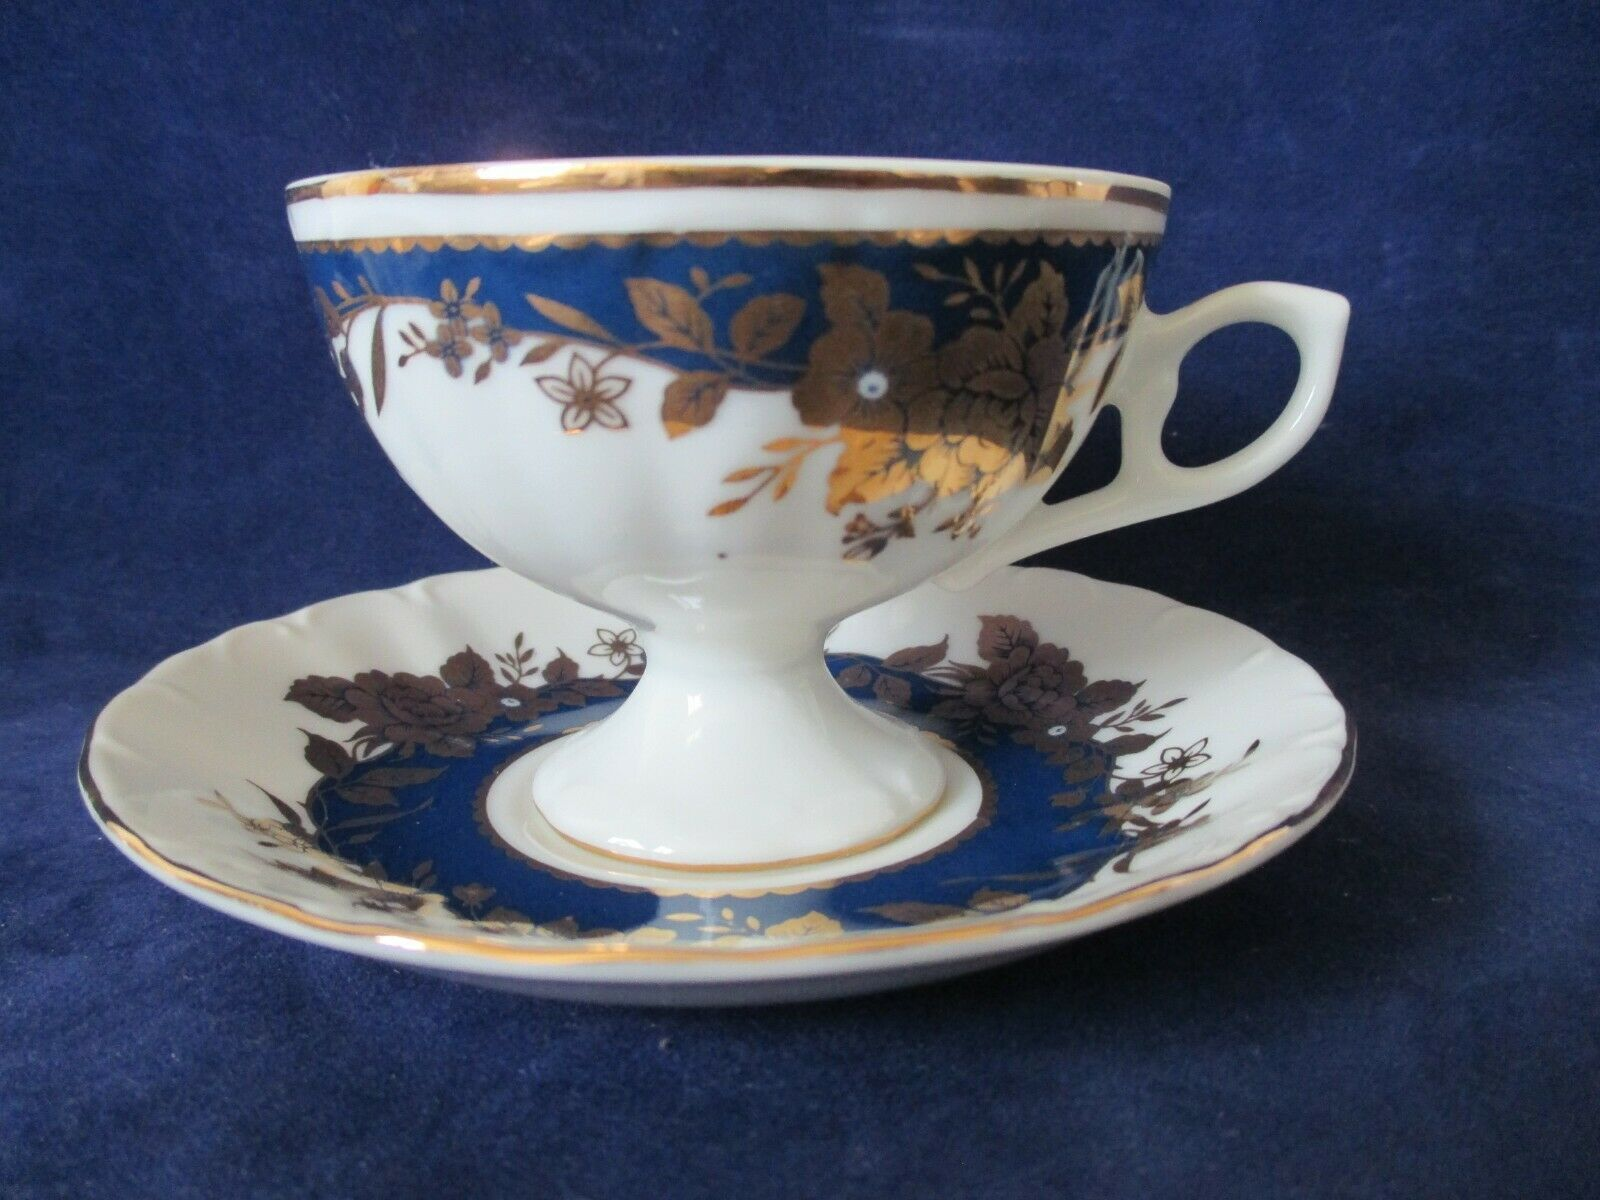 Primary image for Lefton China Footed Tea Cup Saucer 07685 Navy Blue Band Gold Roses 1990